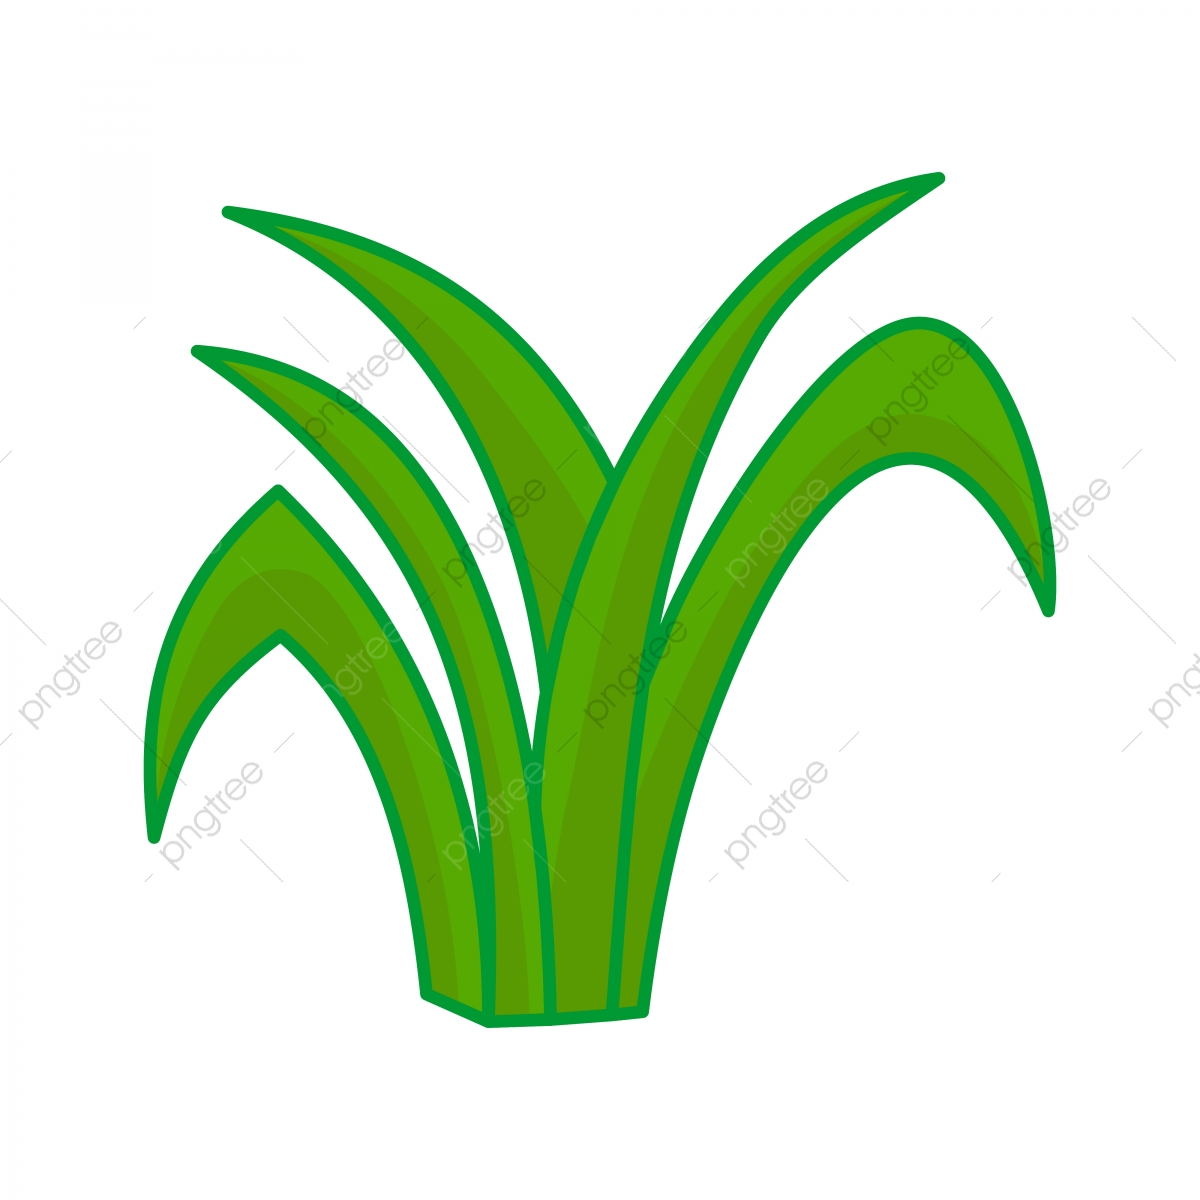 grass leaves vector cartoon illustration design graphic cartoon icons graphic icons grass icons png and vector with transparent background for free download https pngtree com freepng grass leaves vector cartoon illustration design graphic 4296523 html